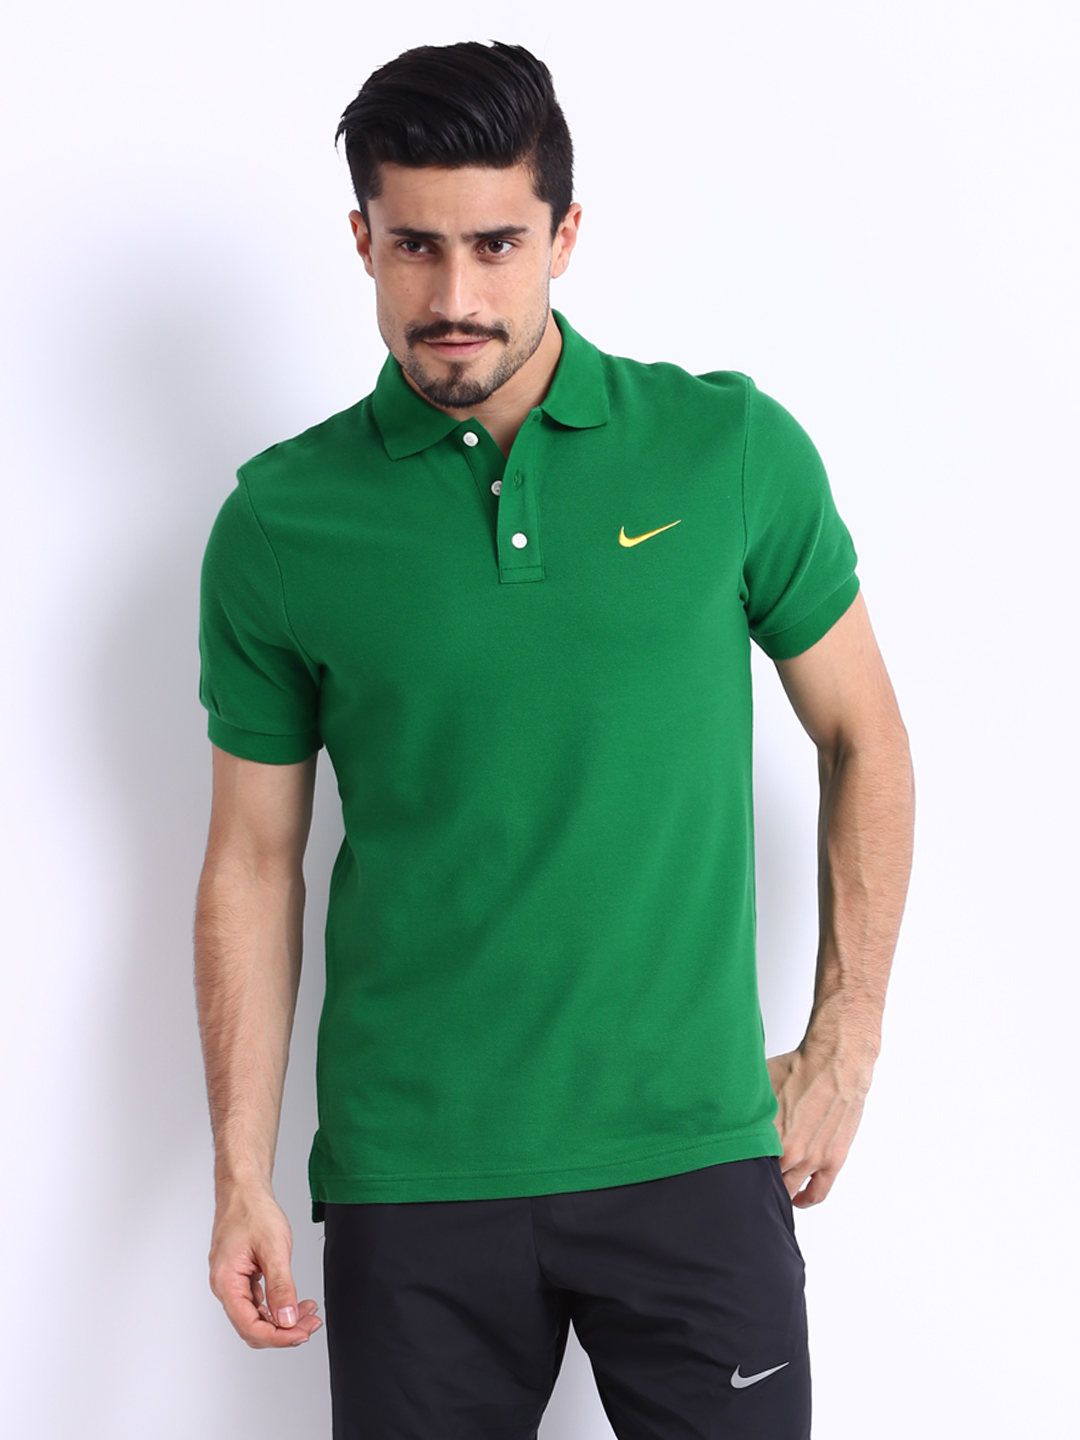 green polo t shirt. Black Bedroom Furniture Sets. Home Design Ideas